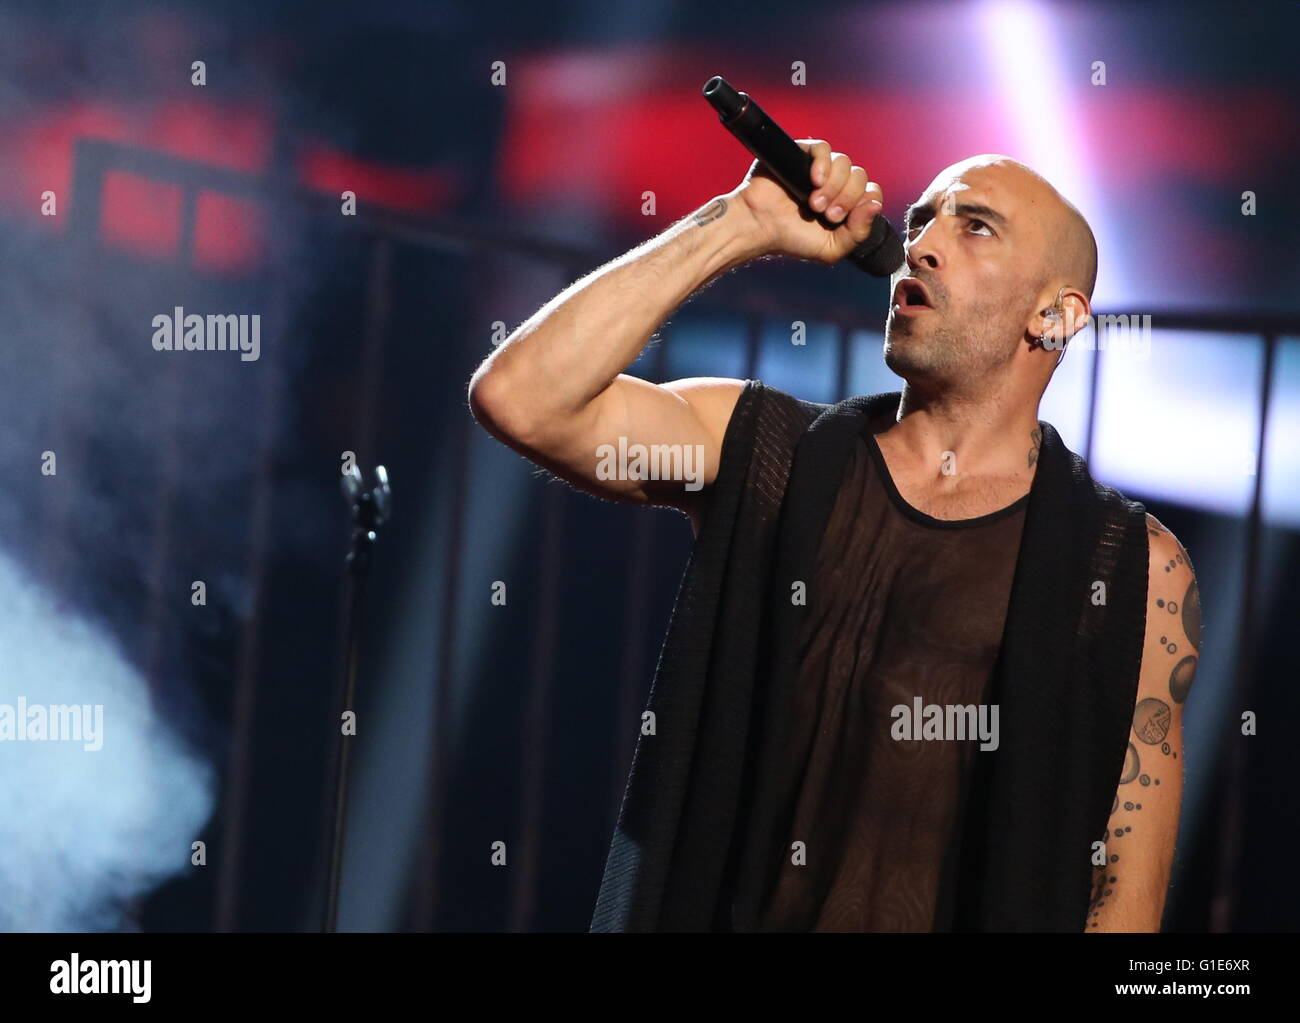 Stockholm, Sweden. 13th May, 2016. Minus One band member Francois Micheletto representing Cyprus performs during - Stock Image